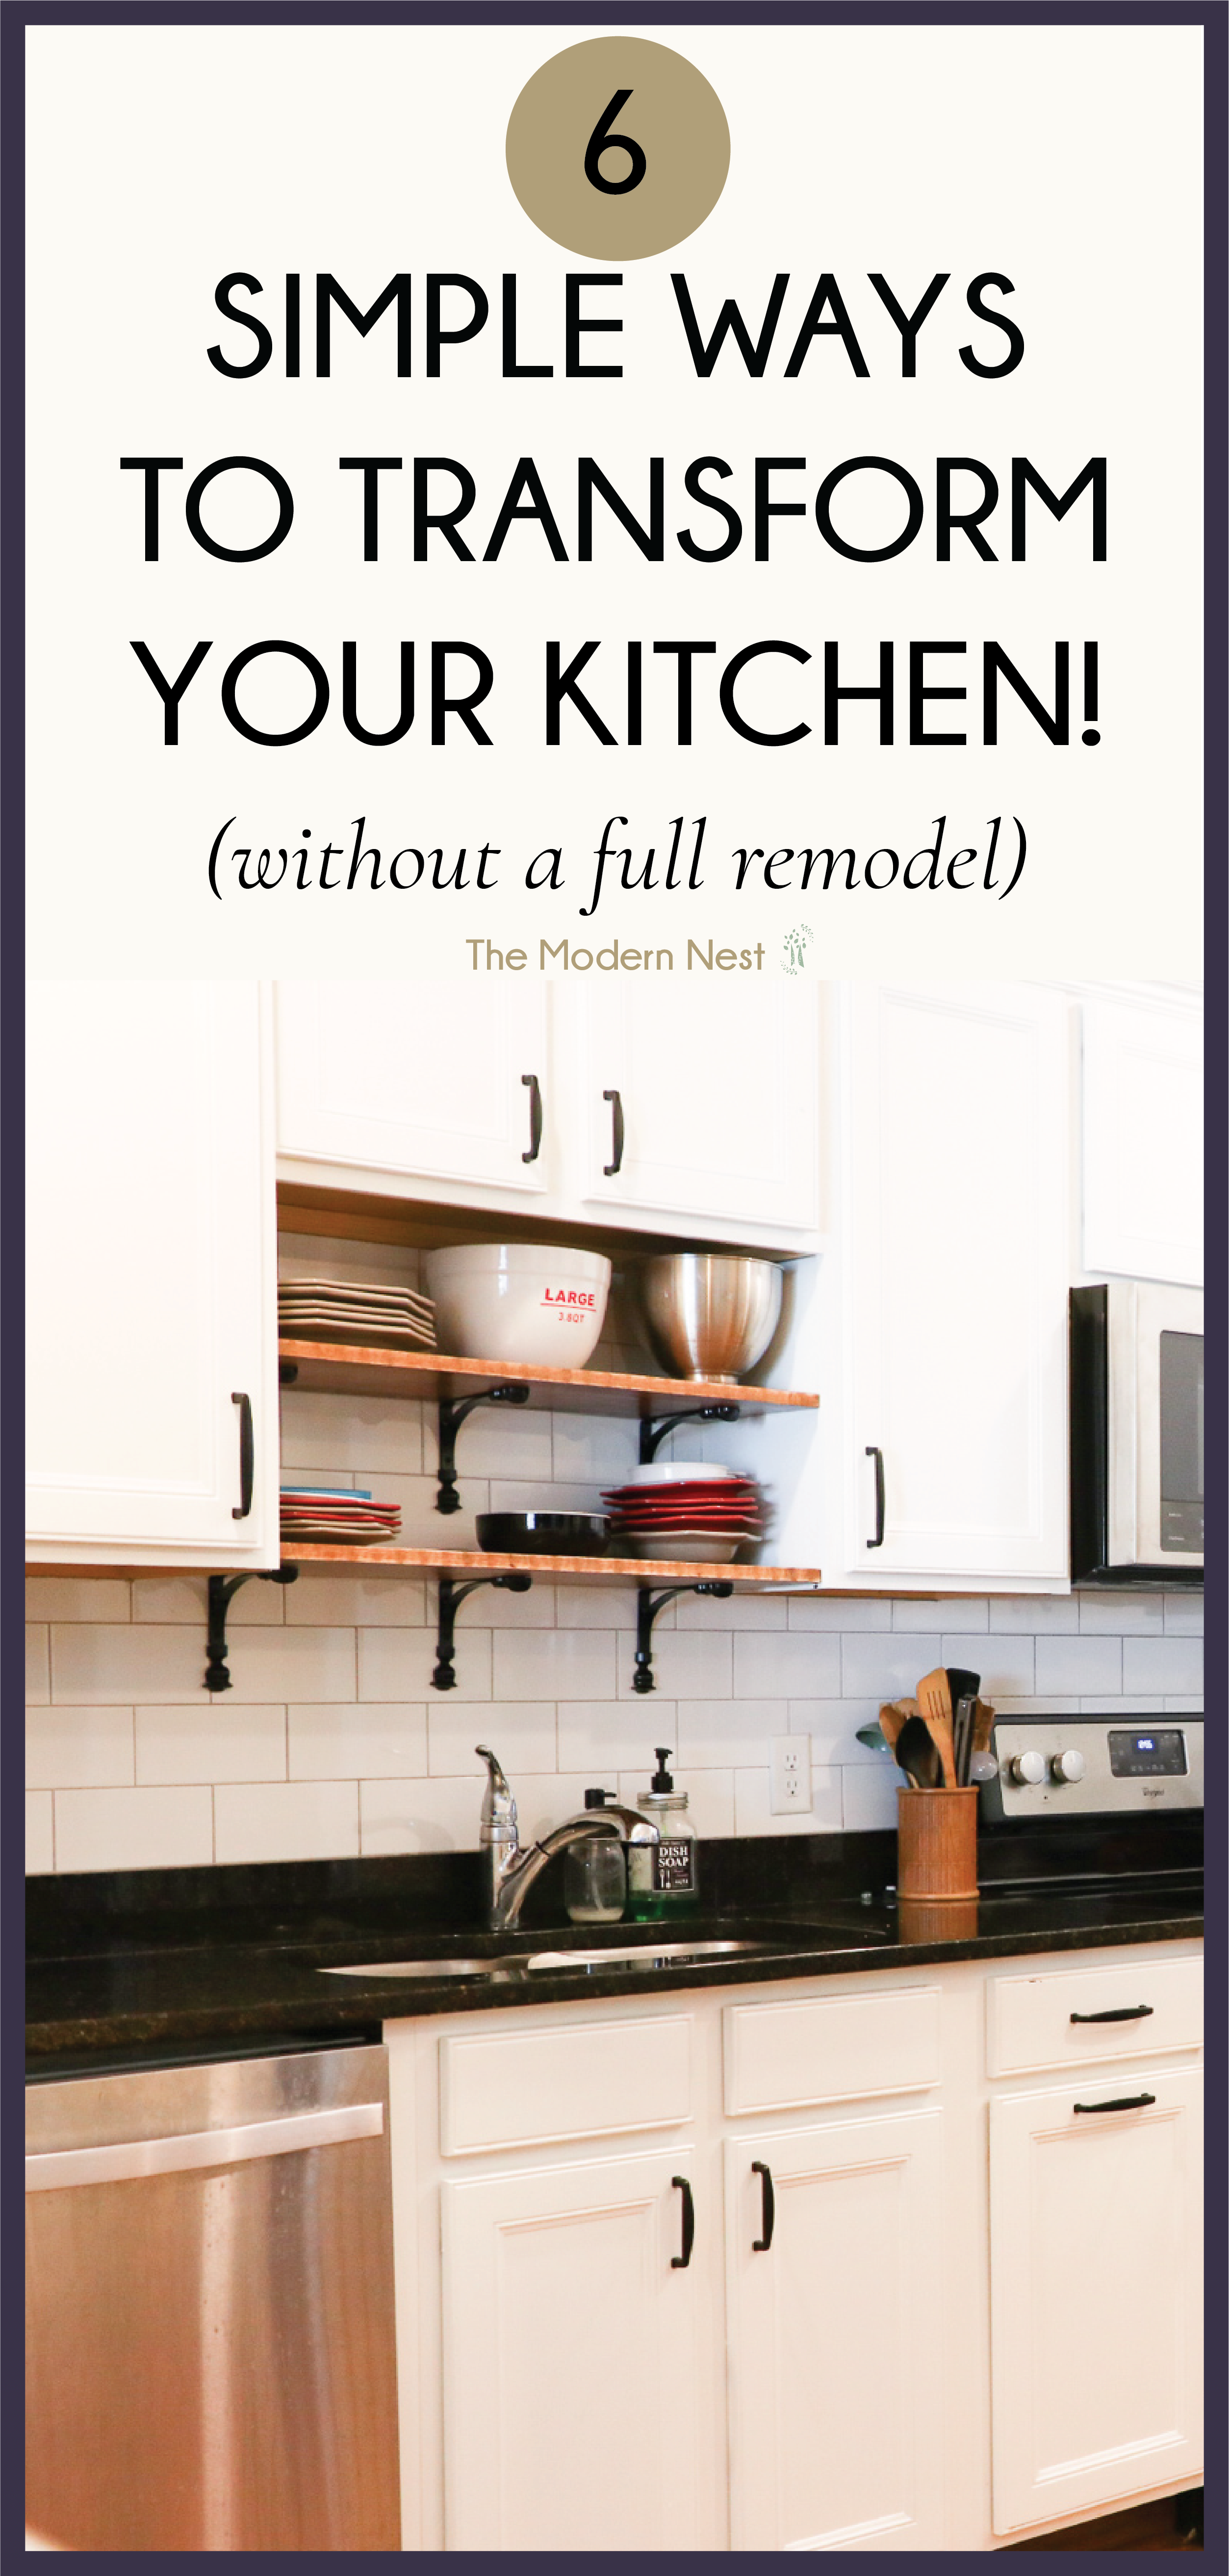 How To Transform Your Kitchen Without Doing A Full Renovation ...